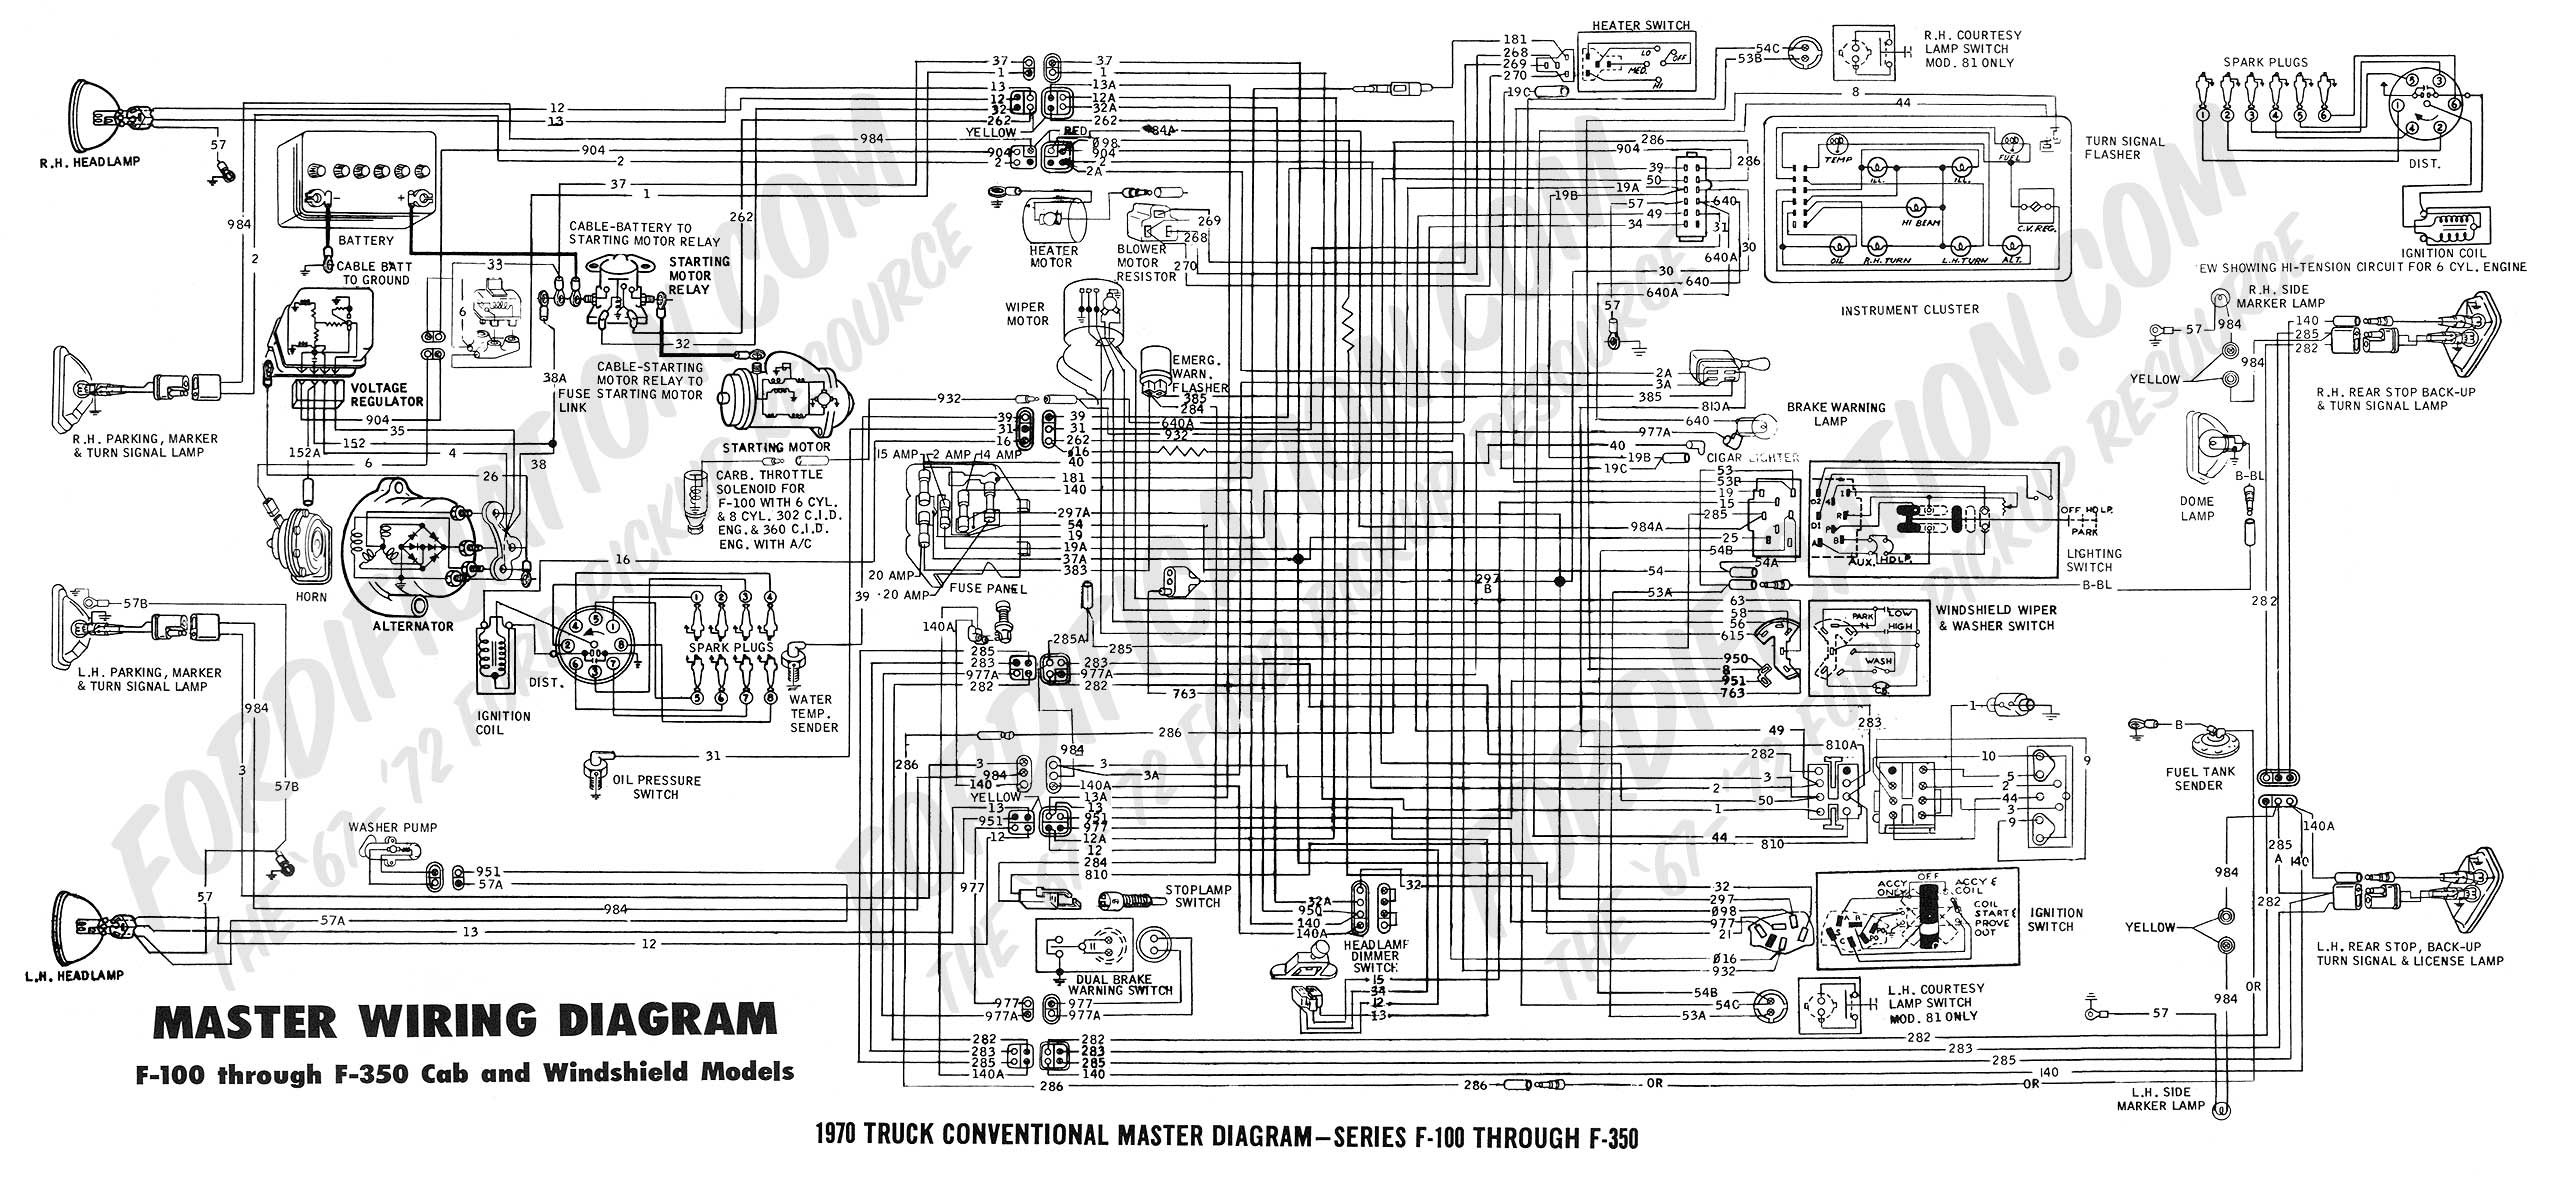 1980 Ford F 150 Fuse Box Diagram Archive Of Automotive Wiring Truck 1967 Steering Column Data Schema Rh Site De Joueurs Com